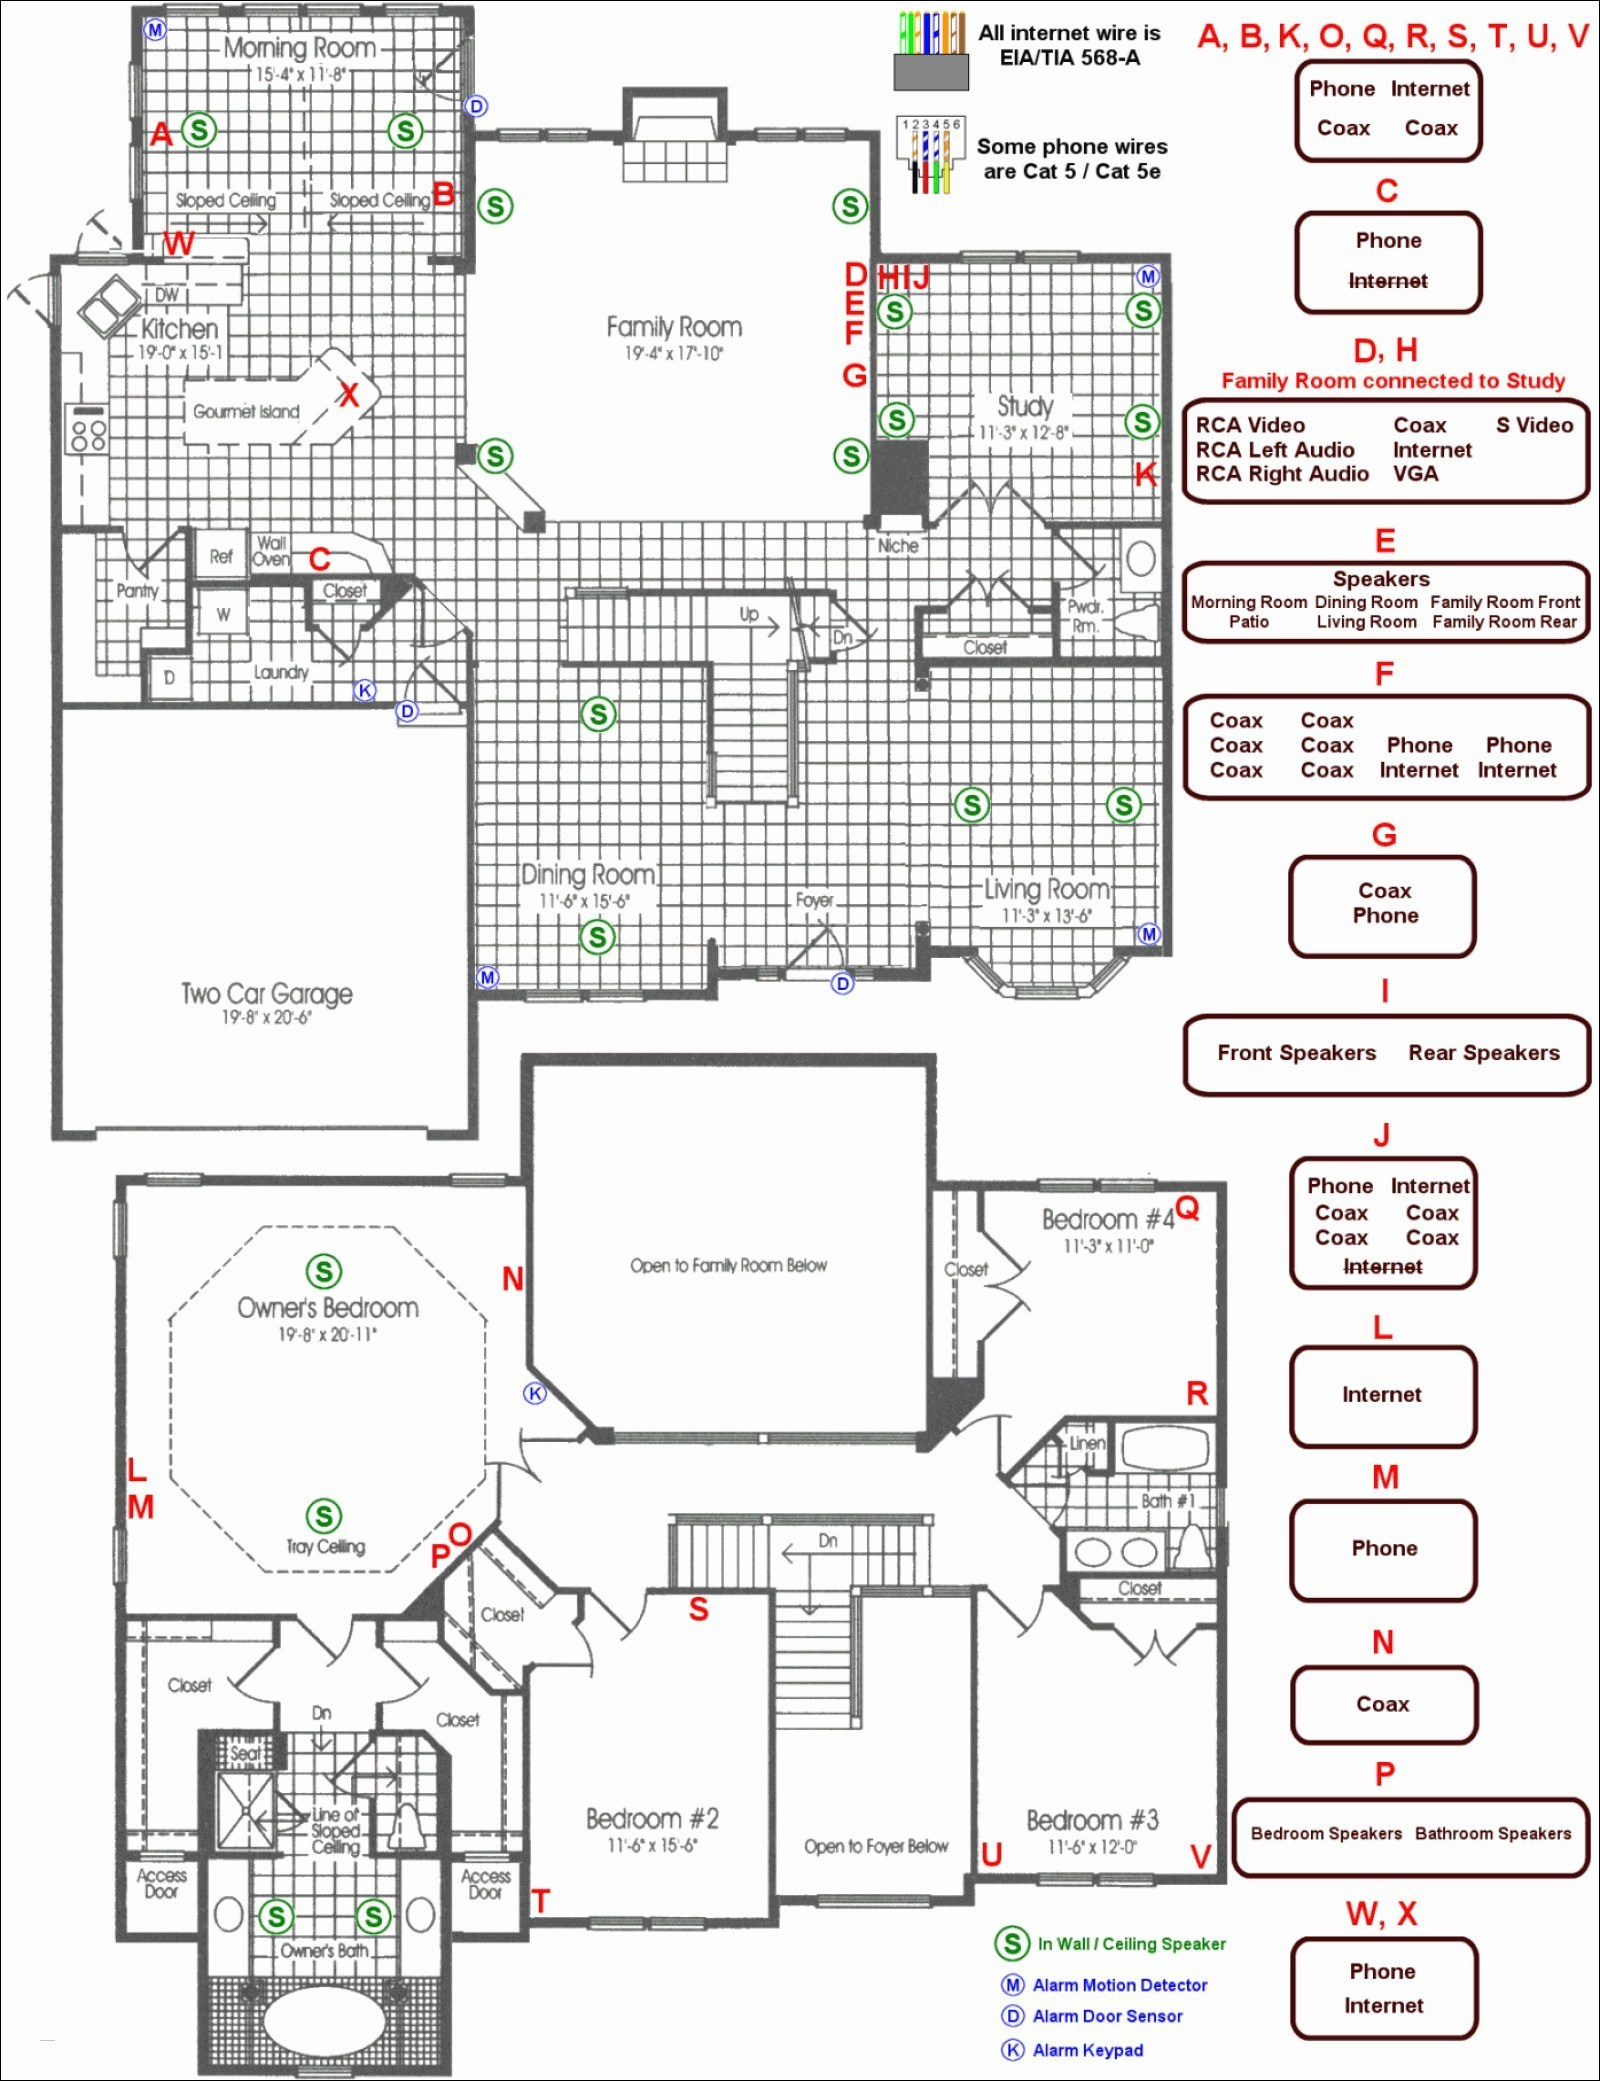 electrical wiring diagram software free download Download-home wiring diagram Collection Aktive Crossoverfrequenzweiche Mit Max4478 360customs Crossover Schematic Rev 0d wiring lighting 16-b